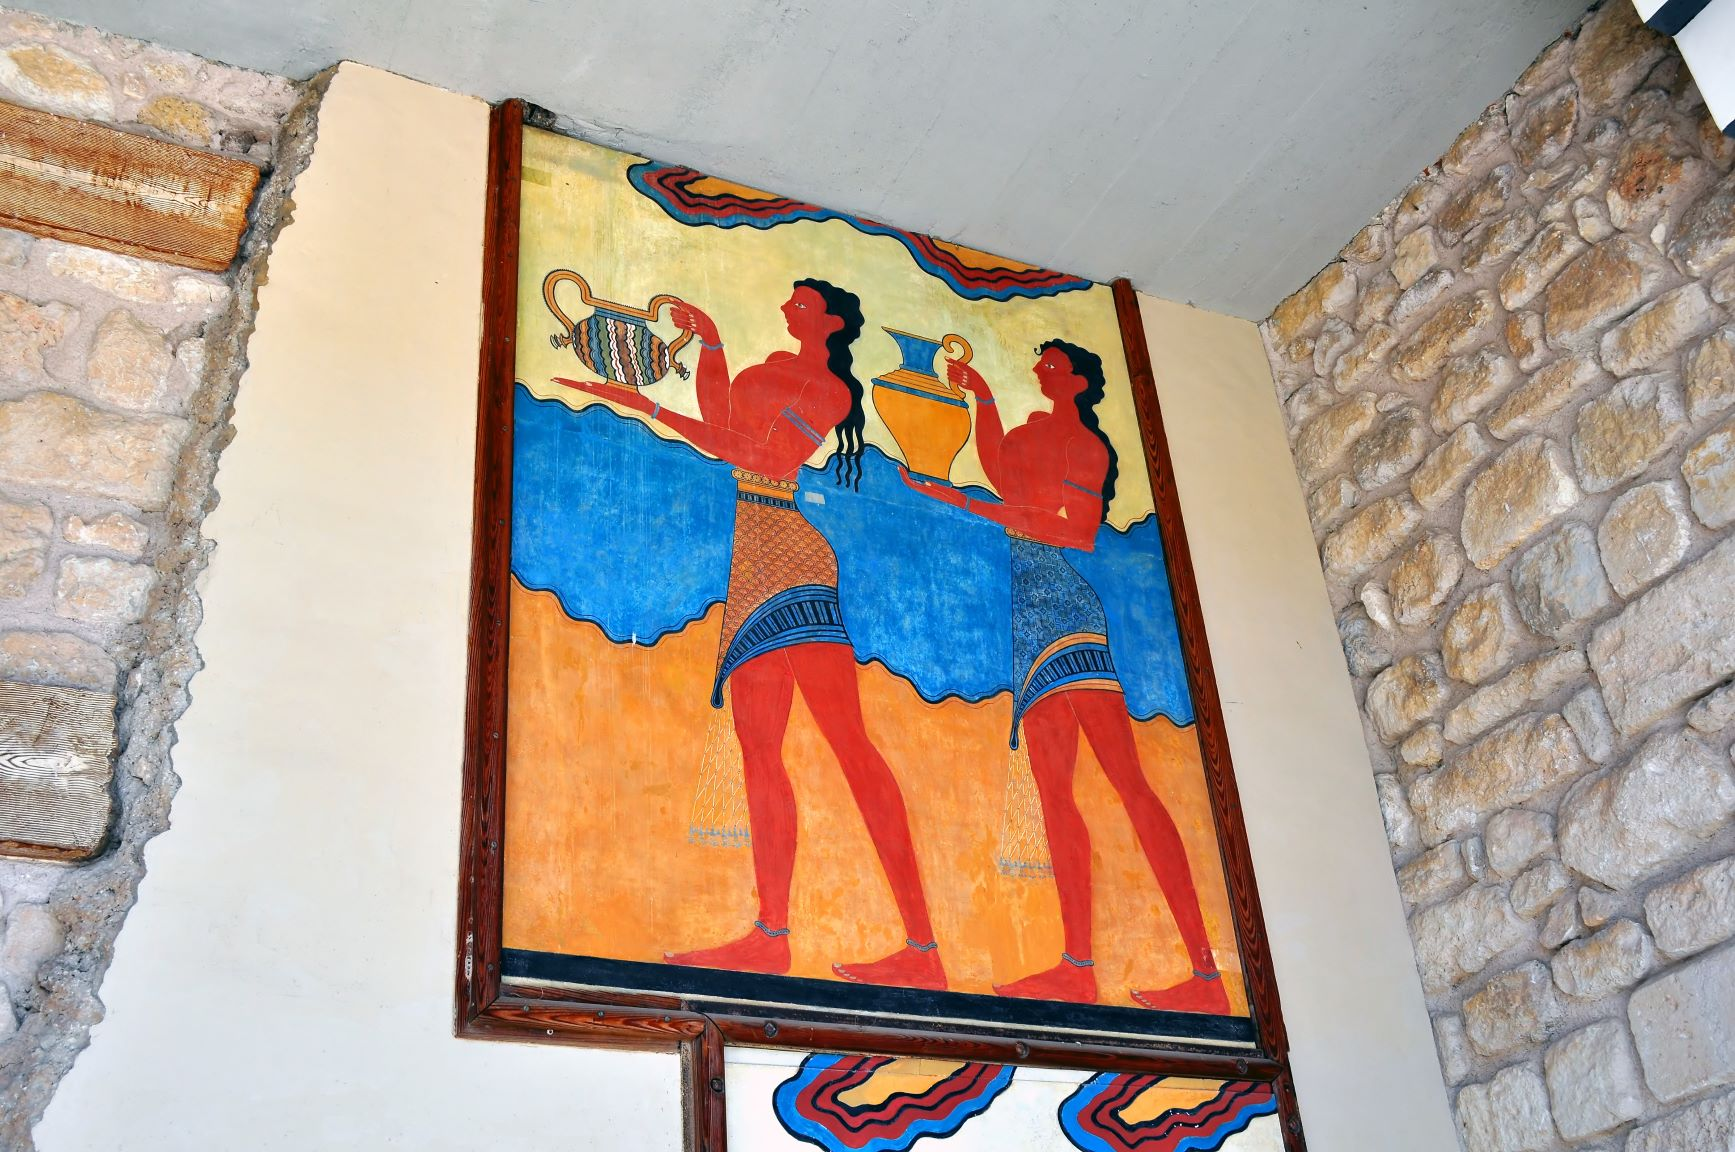 Knossos wall painting